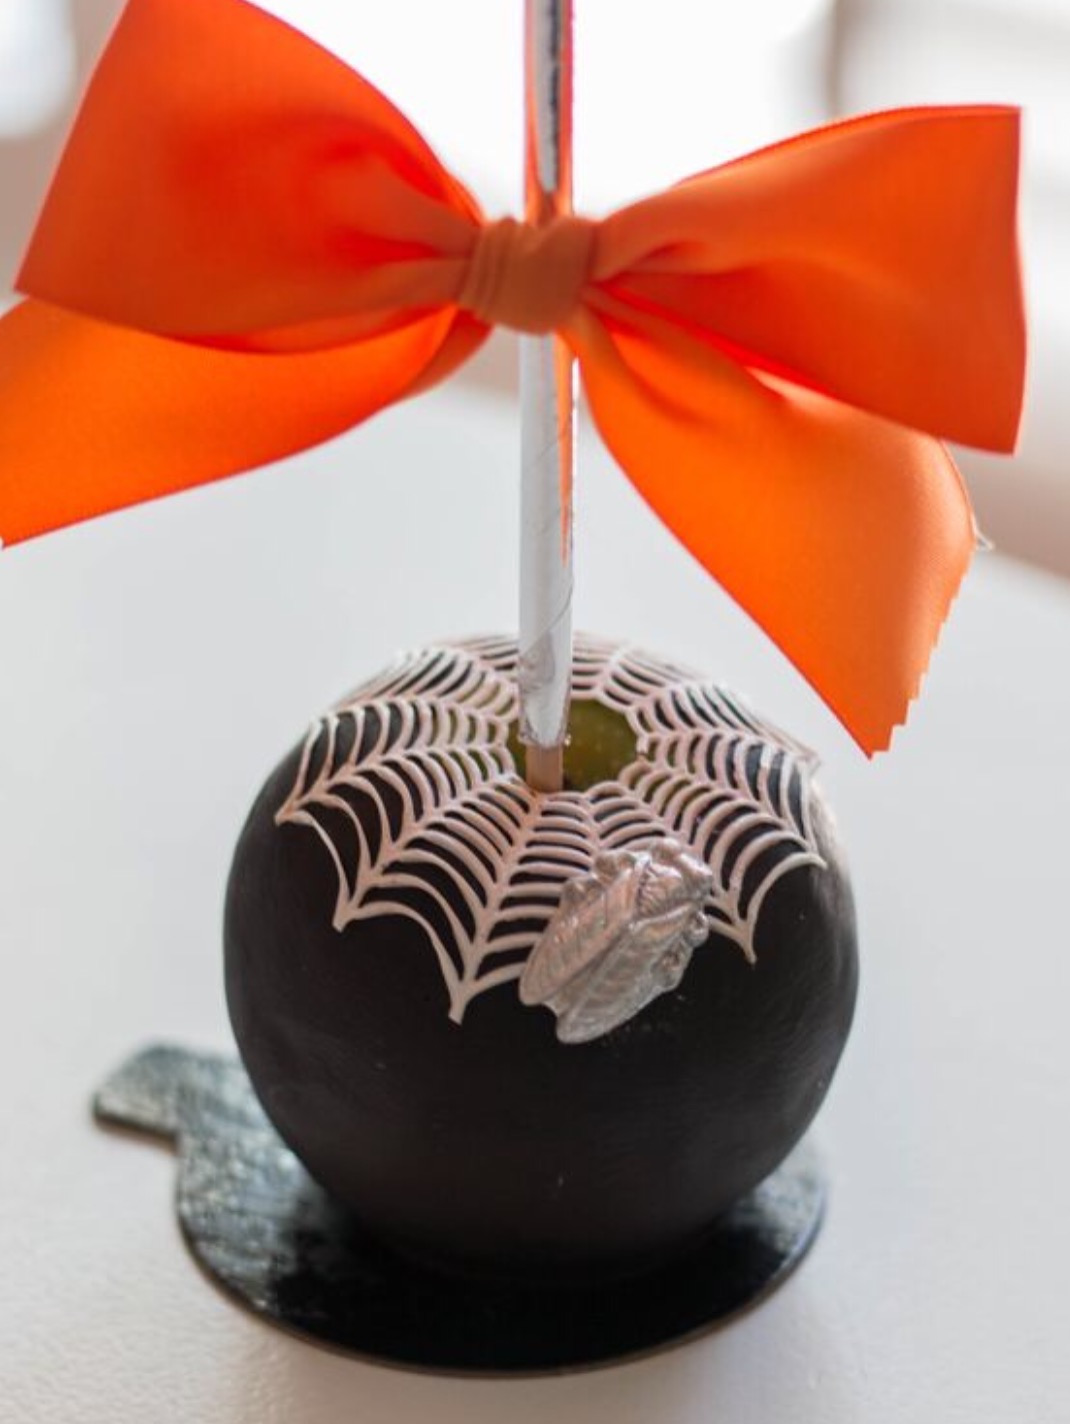 Halloween apples class with guest instructor Roni's Sugar Creations